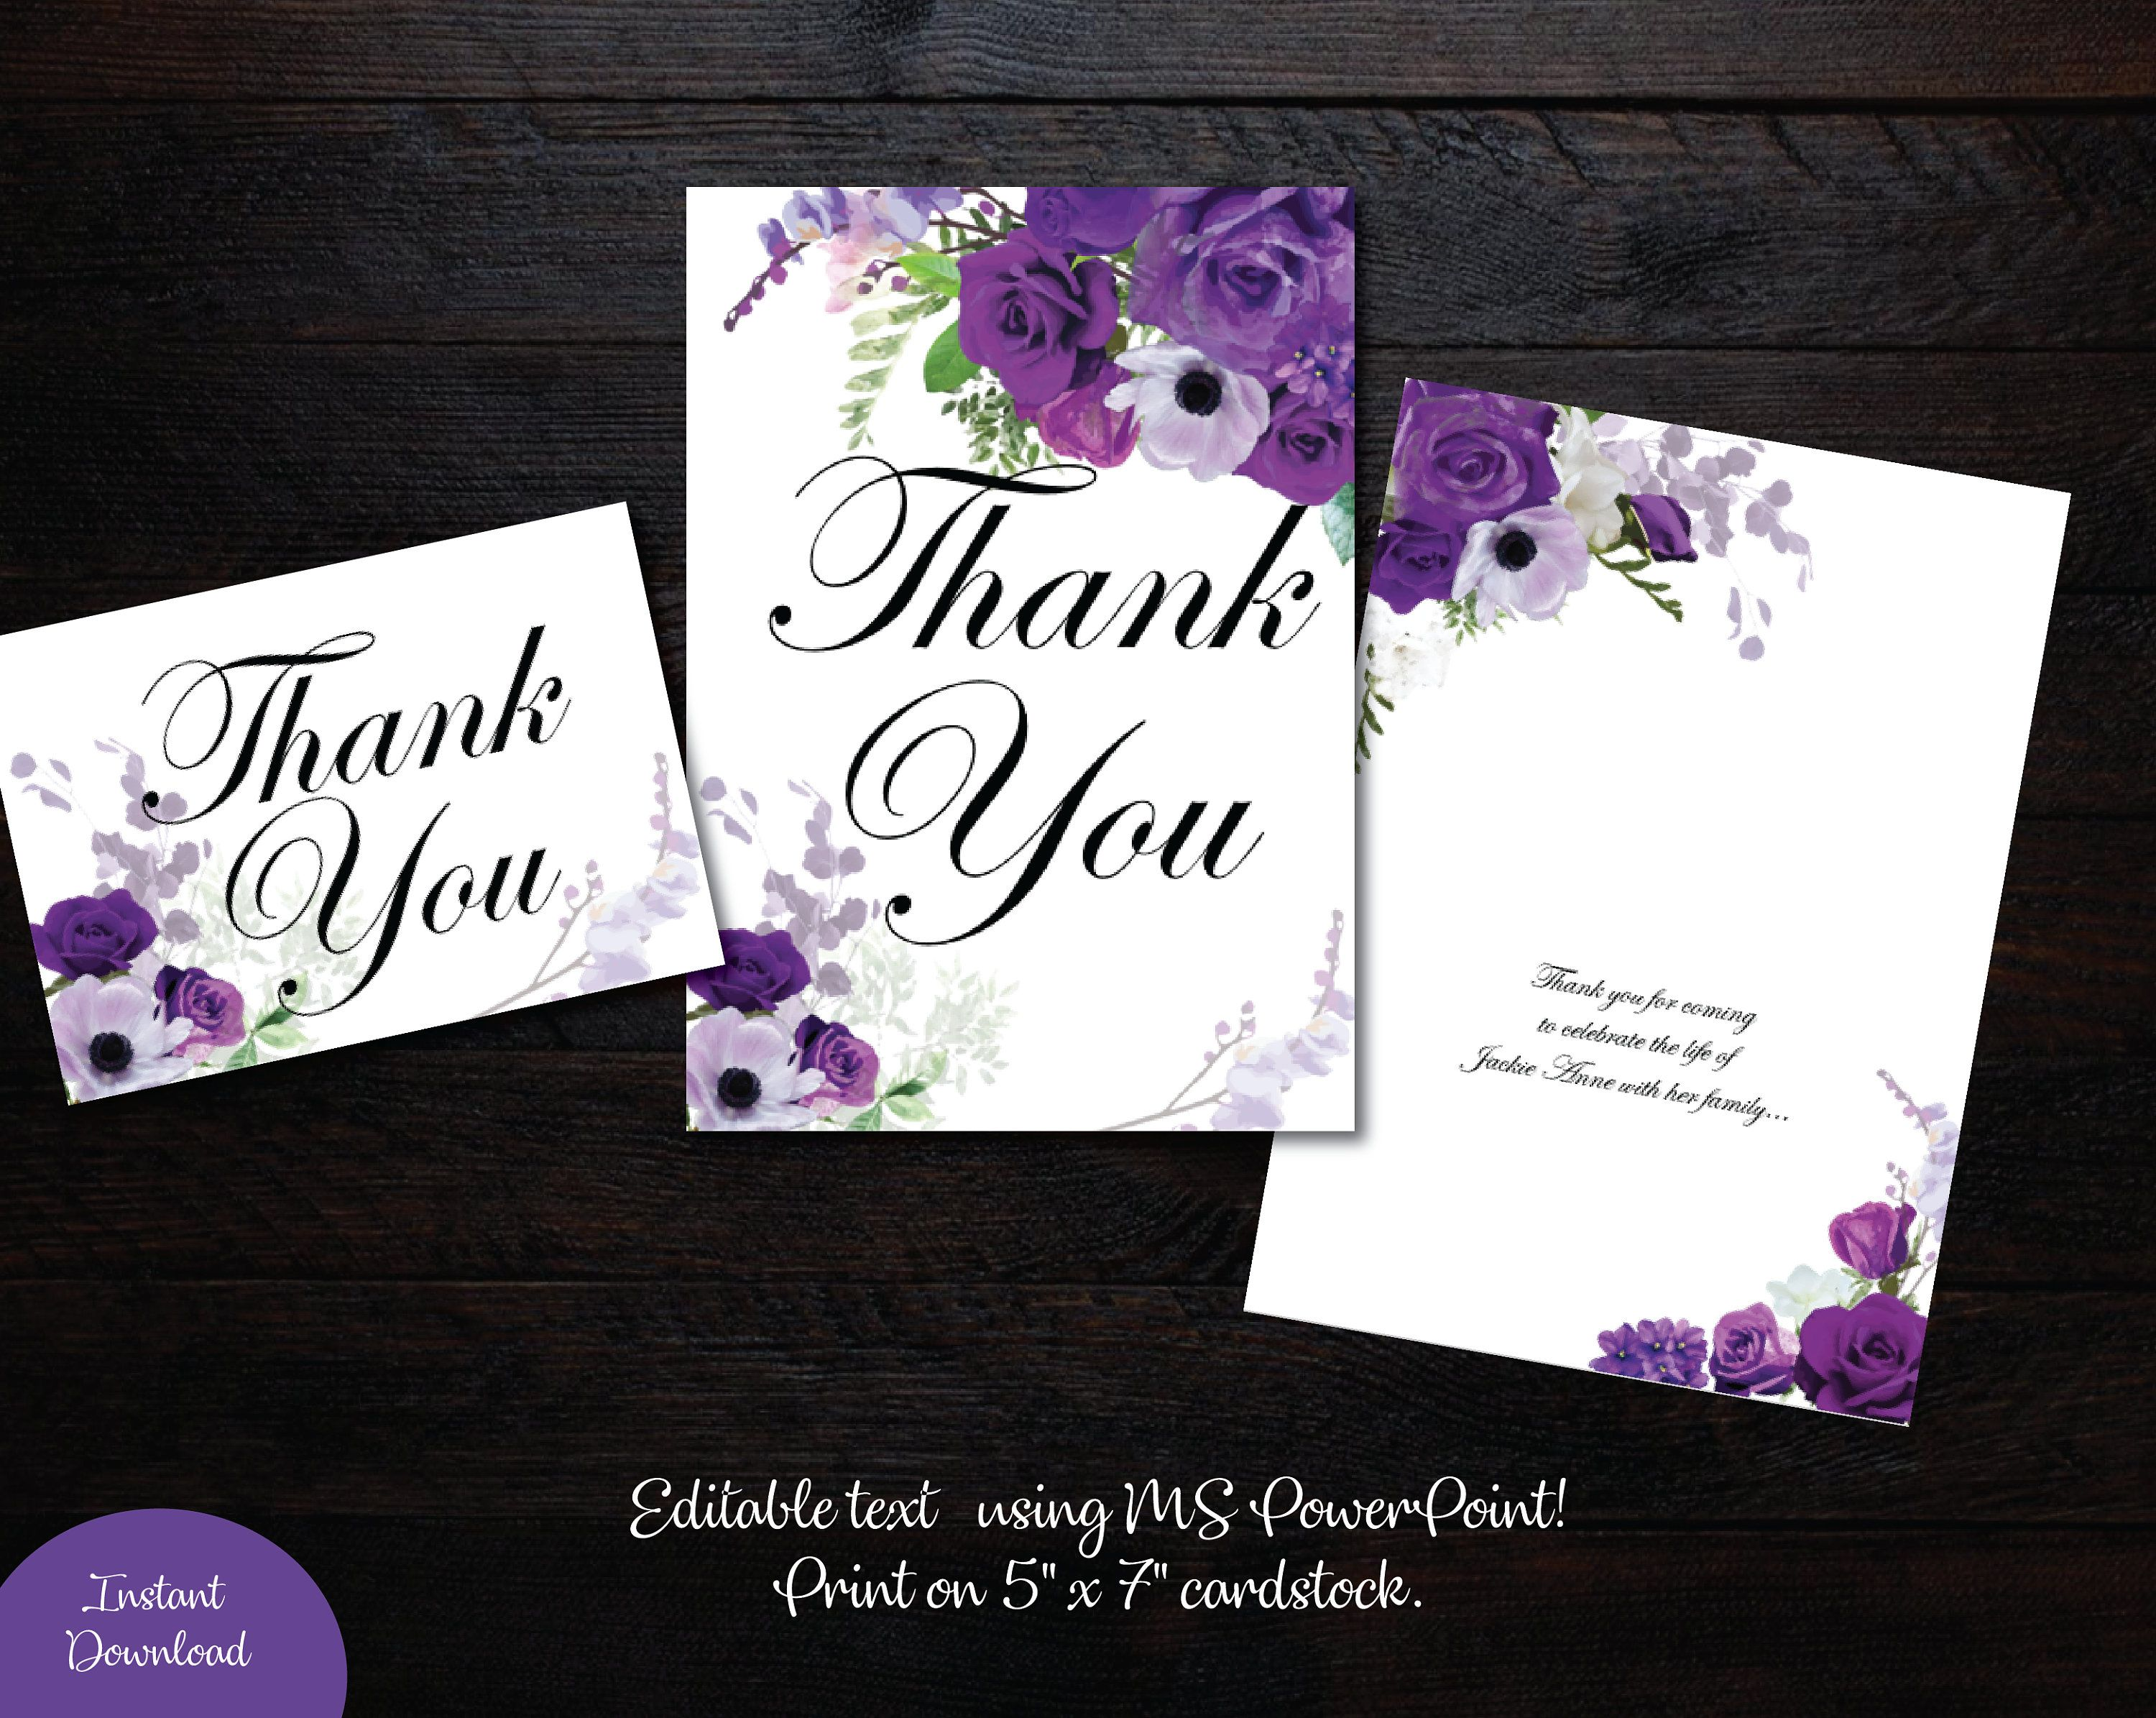 Funeral Thank You Card 5x7 Flat And Folded Card Memorial Thank You Wedding Thank You Card Funeral Thank You Cards Funeral Thank You Thank You Card Template